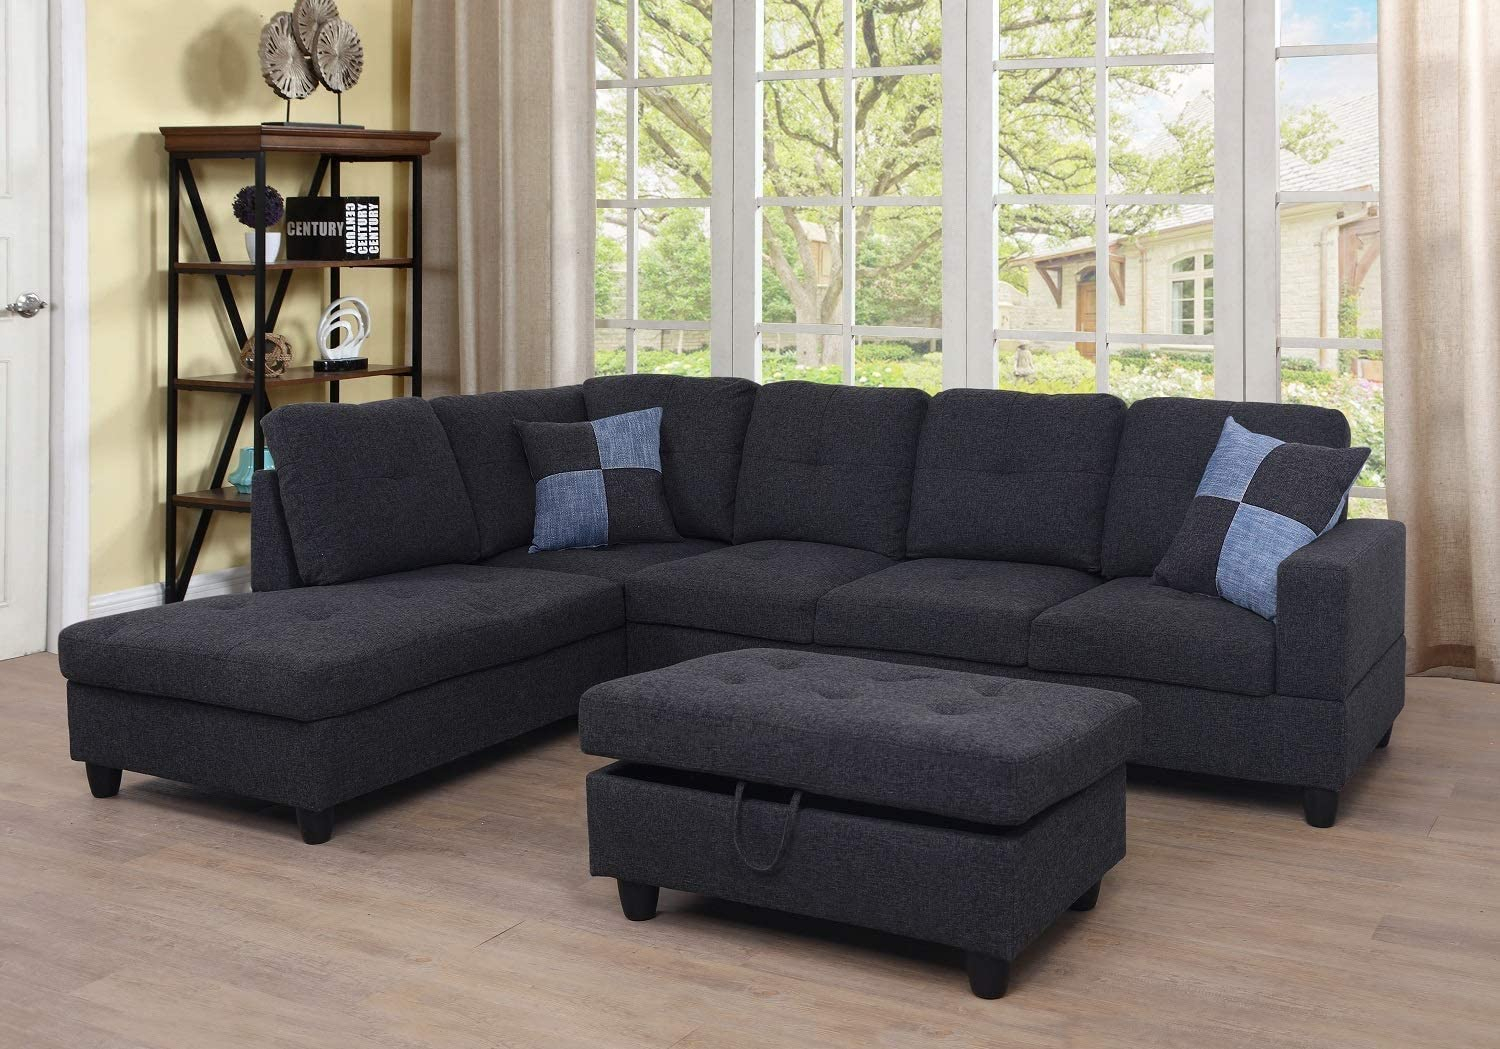 Ponliving Furniture 3 Pcpiece Sectional Sofa Couch Set, L Throughout Hannah Right Sectional Sofas (View 4 of 15)